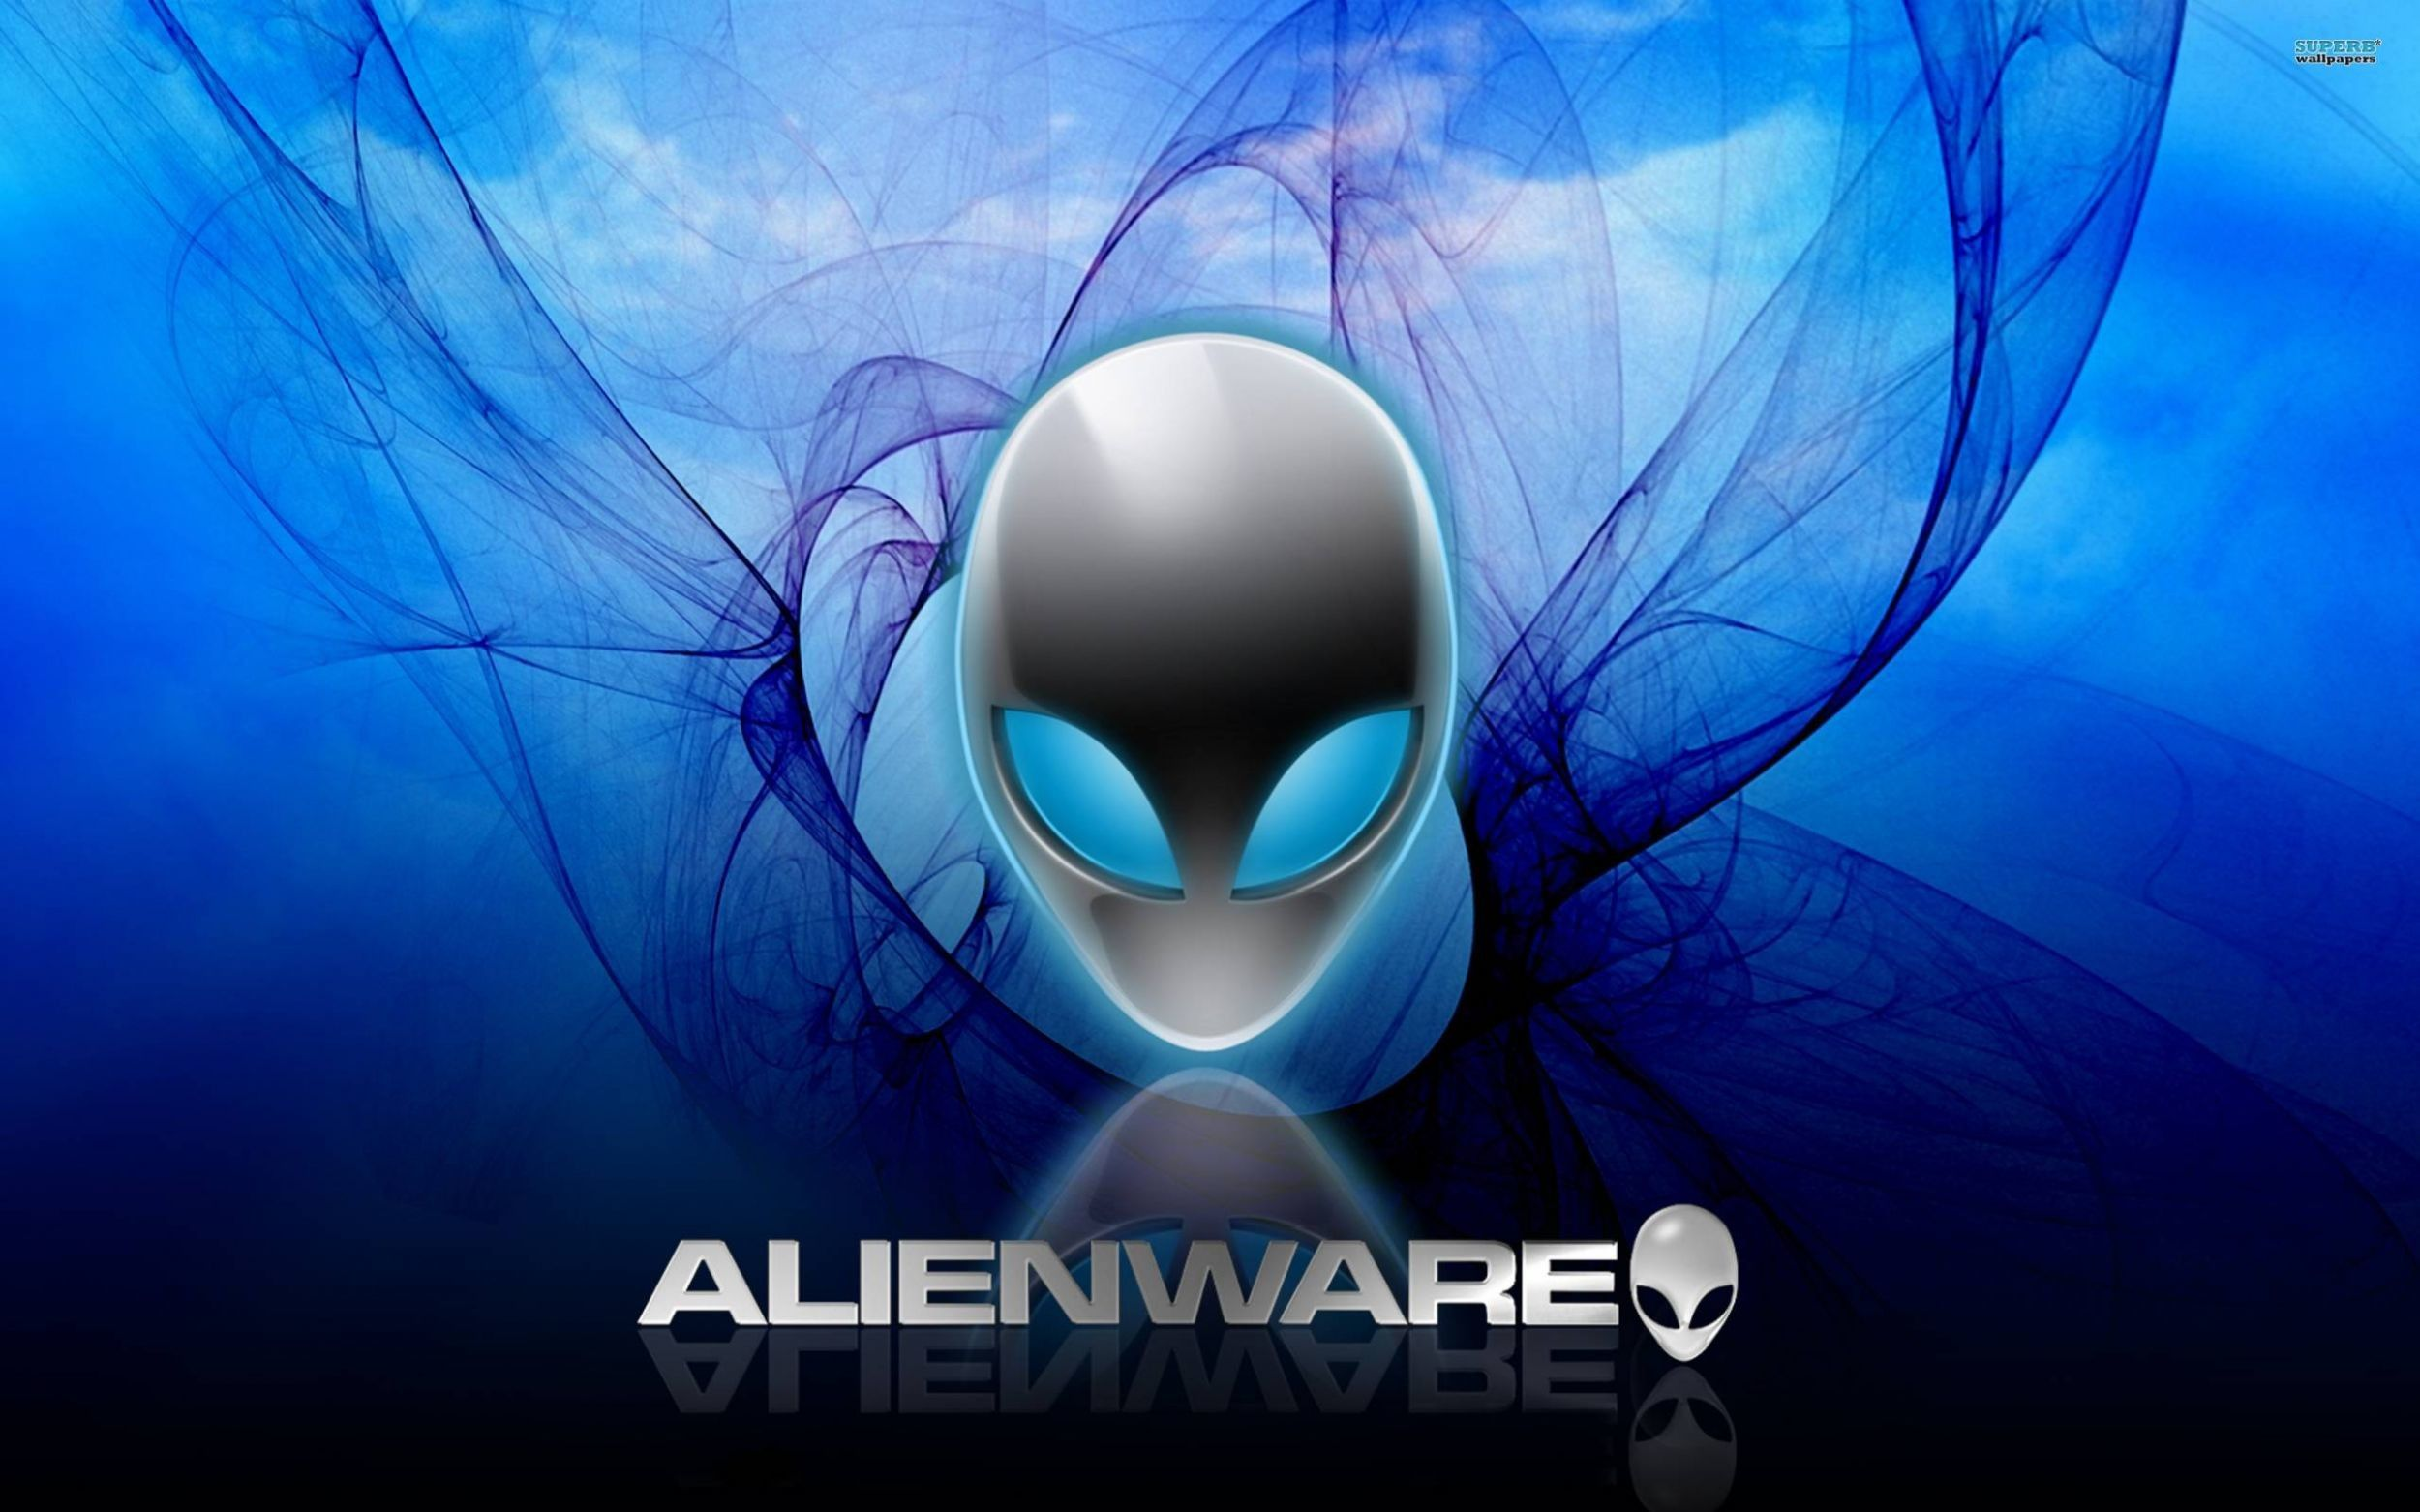 Res 2500x1562 4k Ultra Hd Creative Alienware Pictures 2560x1600 Donnetta Braaten For Mobile And Des In 2020 Alienware Full Hd Desktop Wallpapers Alienware Desktop